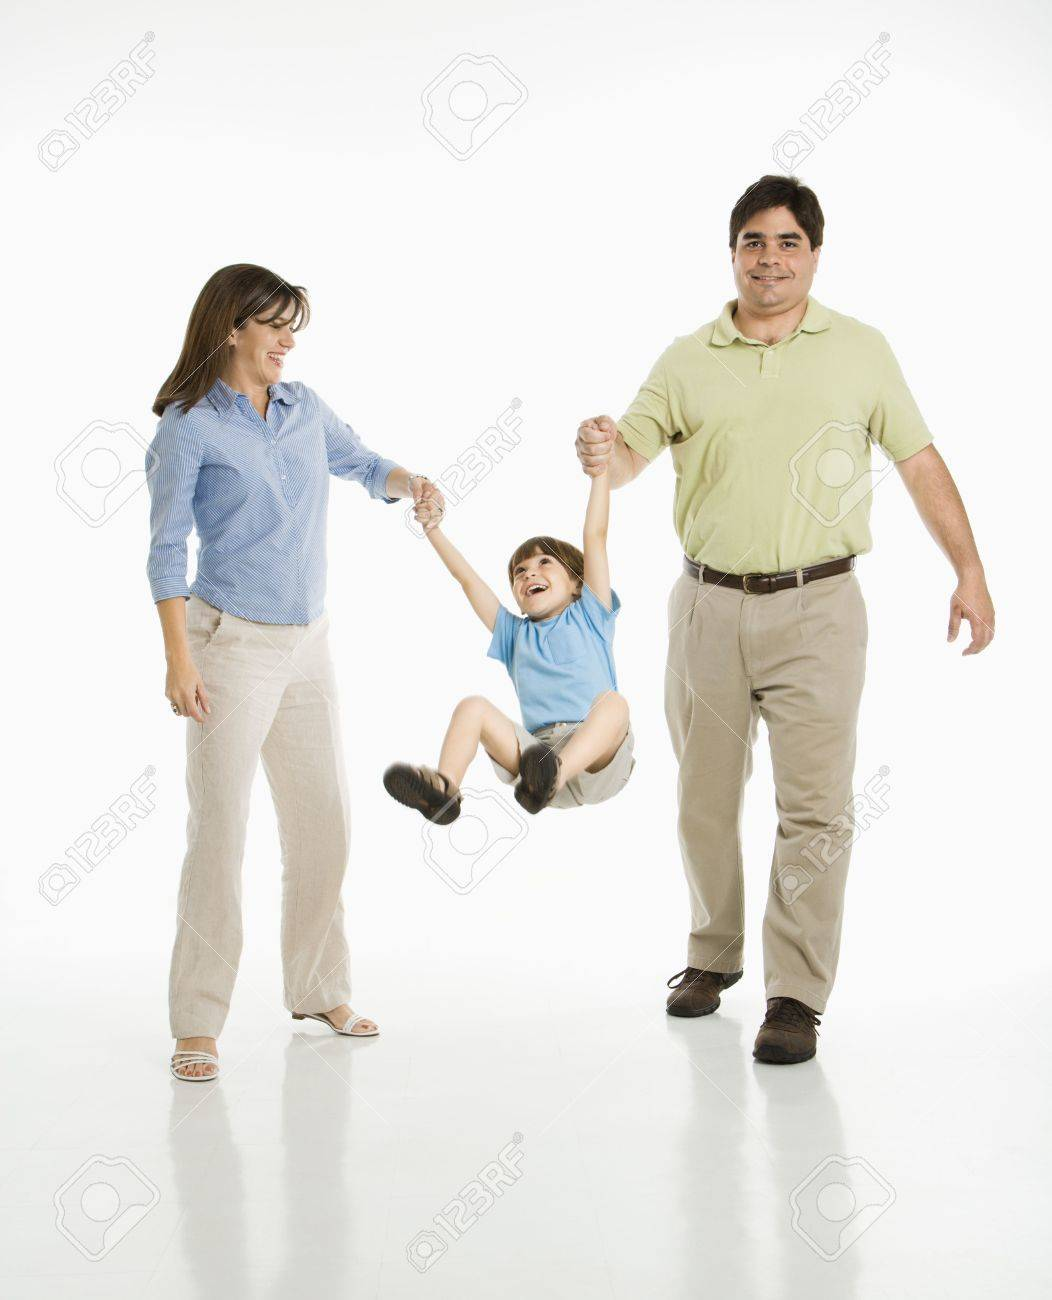 Hispanic mother and father swinging son against white background. Stock Photo - 1874345